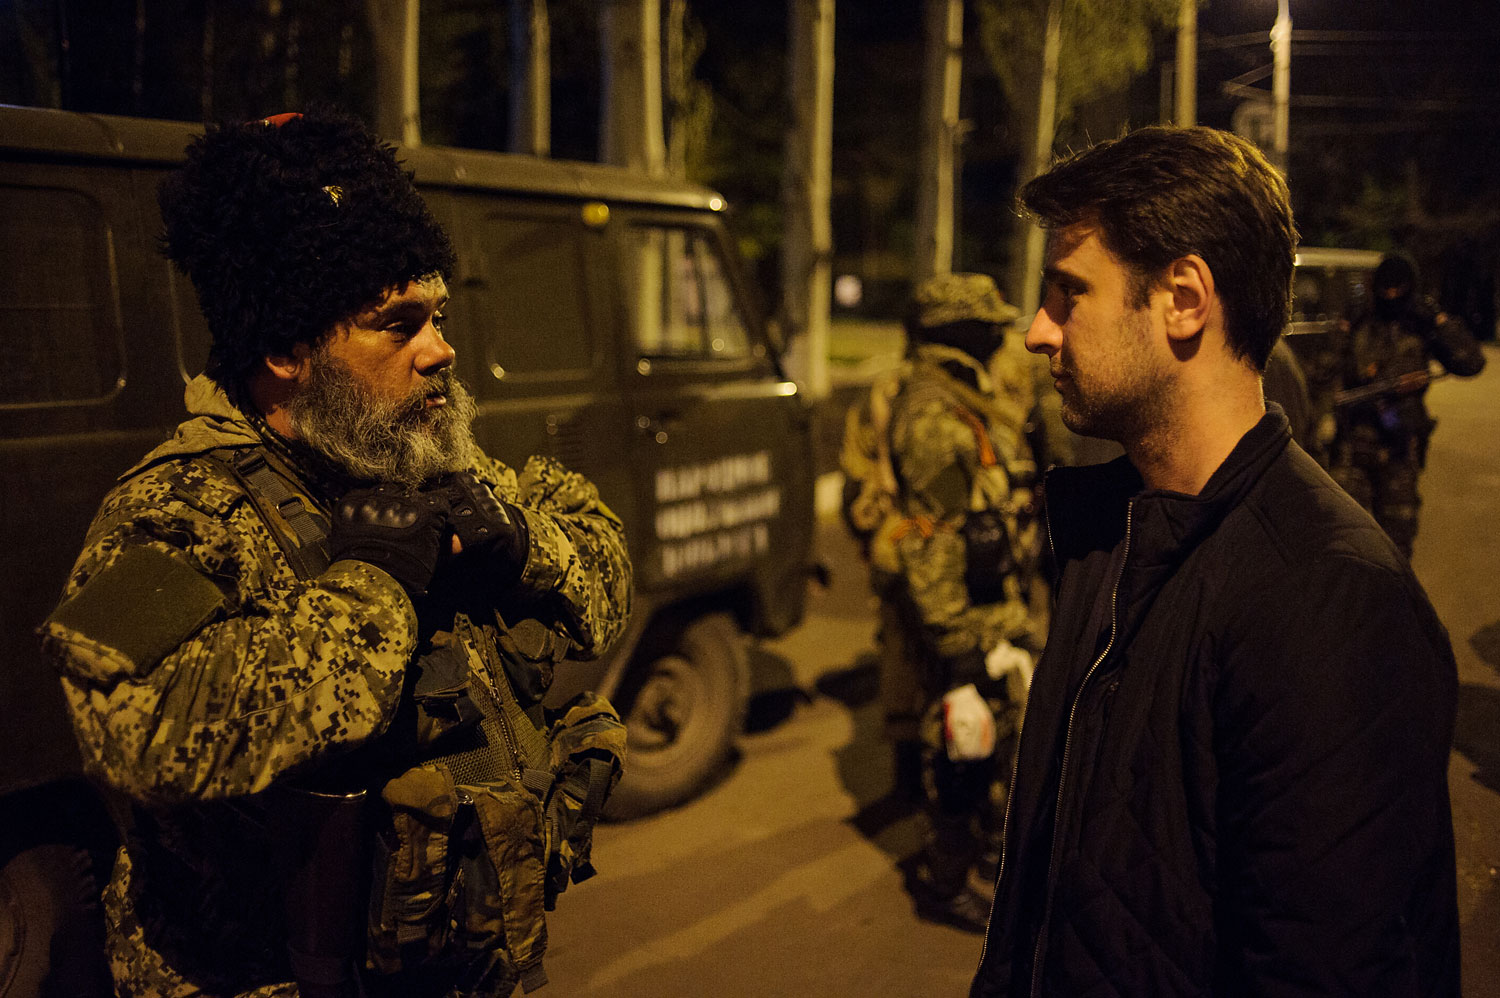 Mozhaev talks with TIME correspondent Simon Shuster in the town of Kramatorsk on April 21